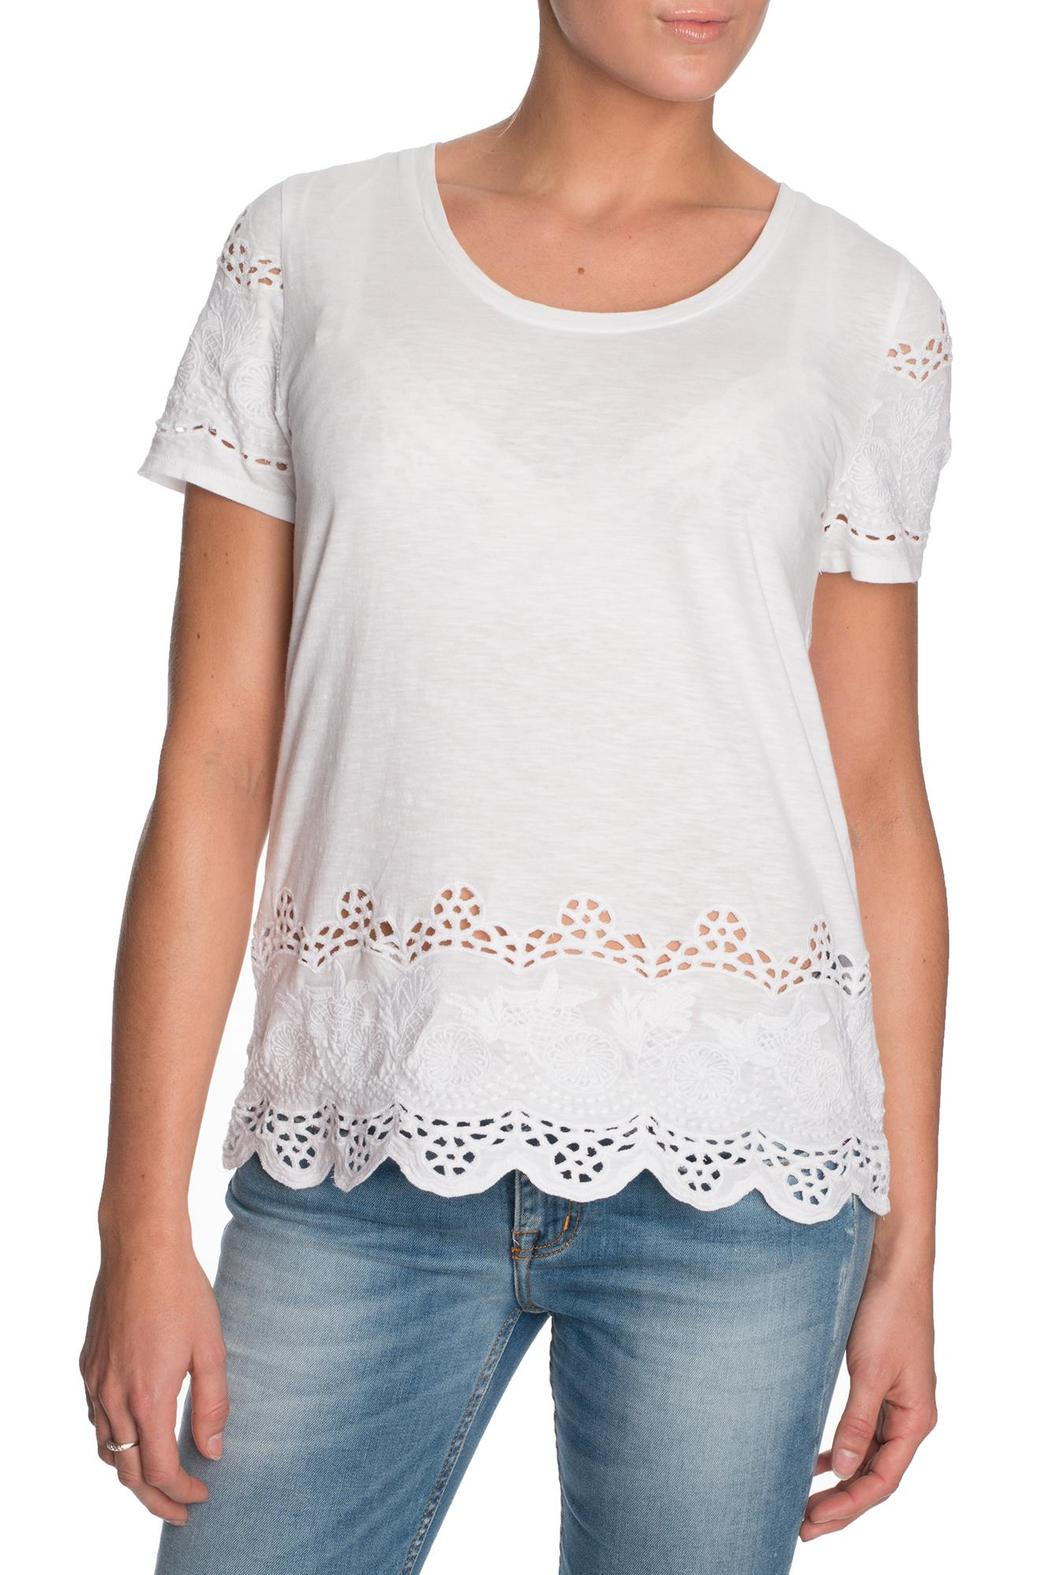 Michael by Michael Kors Lace Cutout Shirt - Front Cropped Image